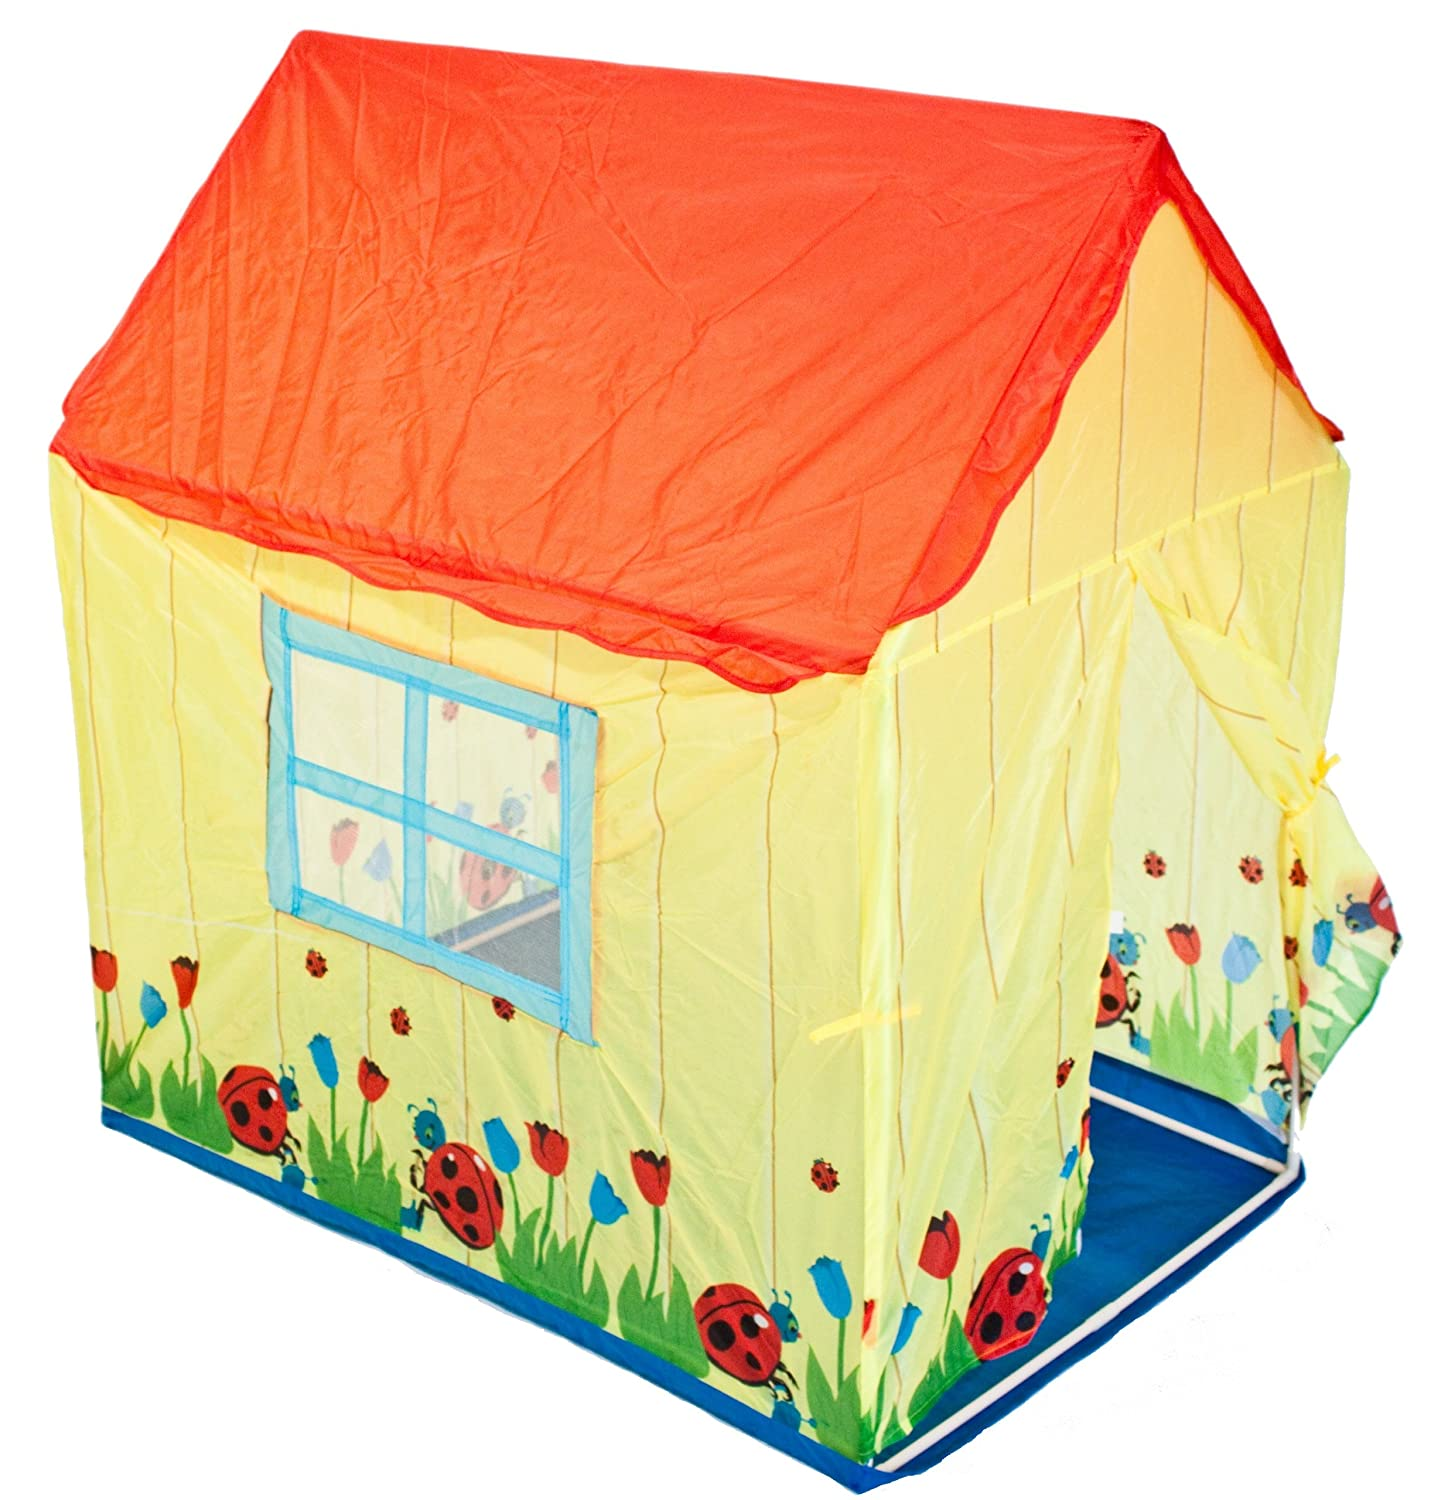 Traditional Garden Games Ladybird House Play Tent Amazon.co.uk Toys u0026 Games  sc 1 st  Amazon UK & Traditional Garden Games Ladybird House Play Tent: Amazon.co.uk ...